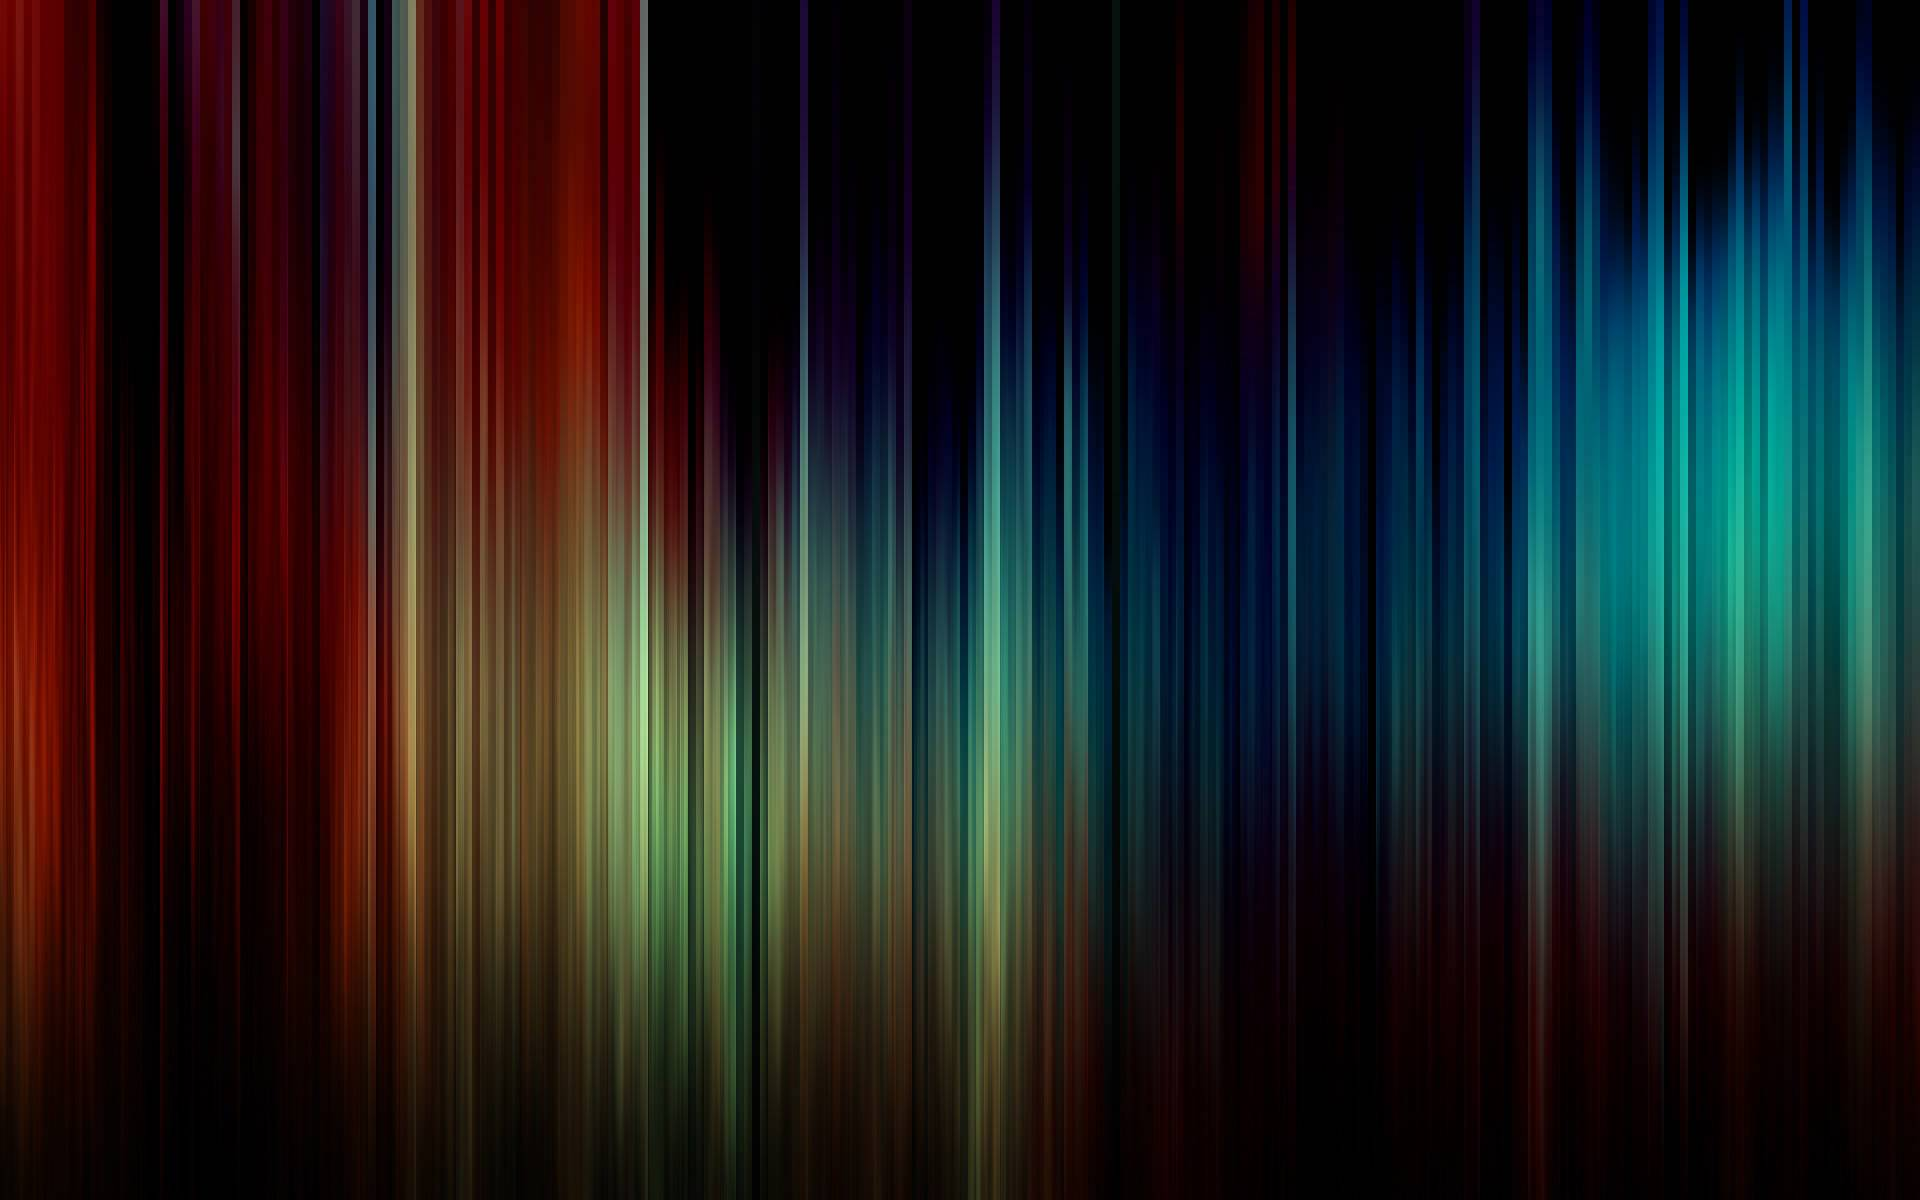 Abstract wallpapers pack 4 - Abstract hd widescreen wallpapers ...